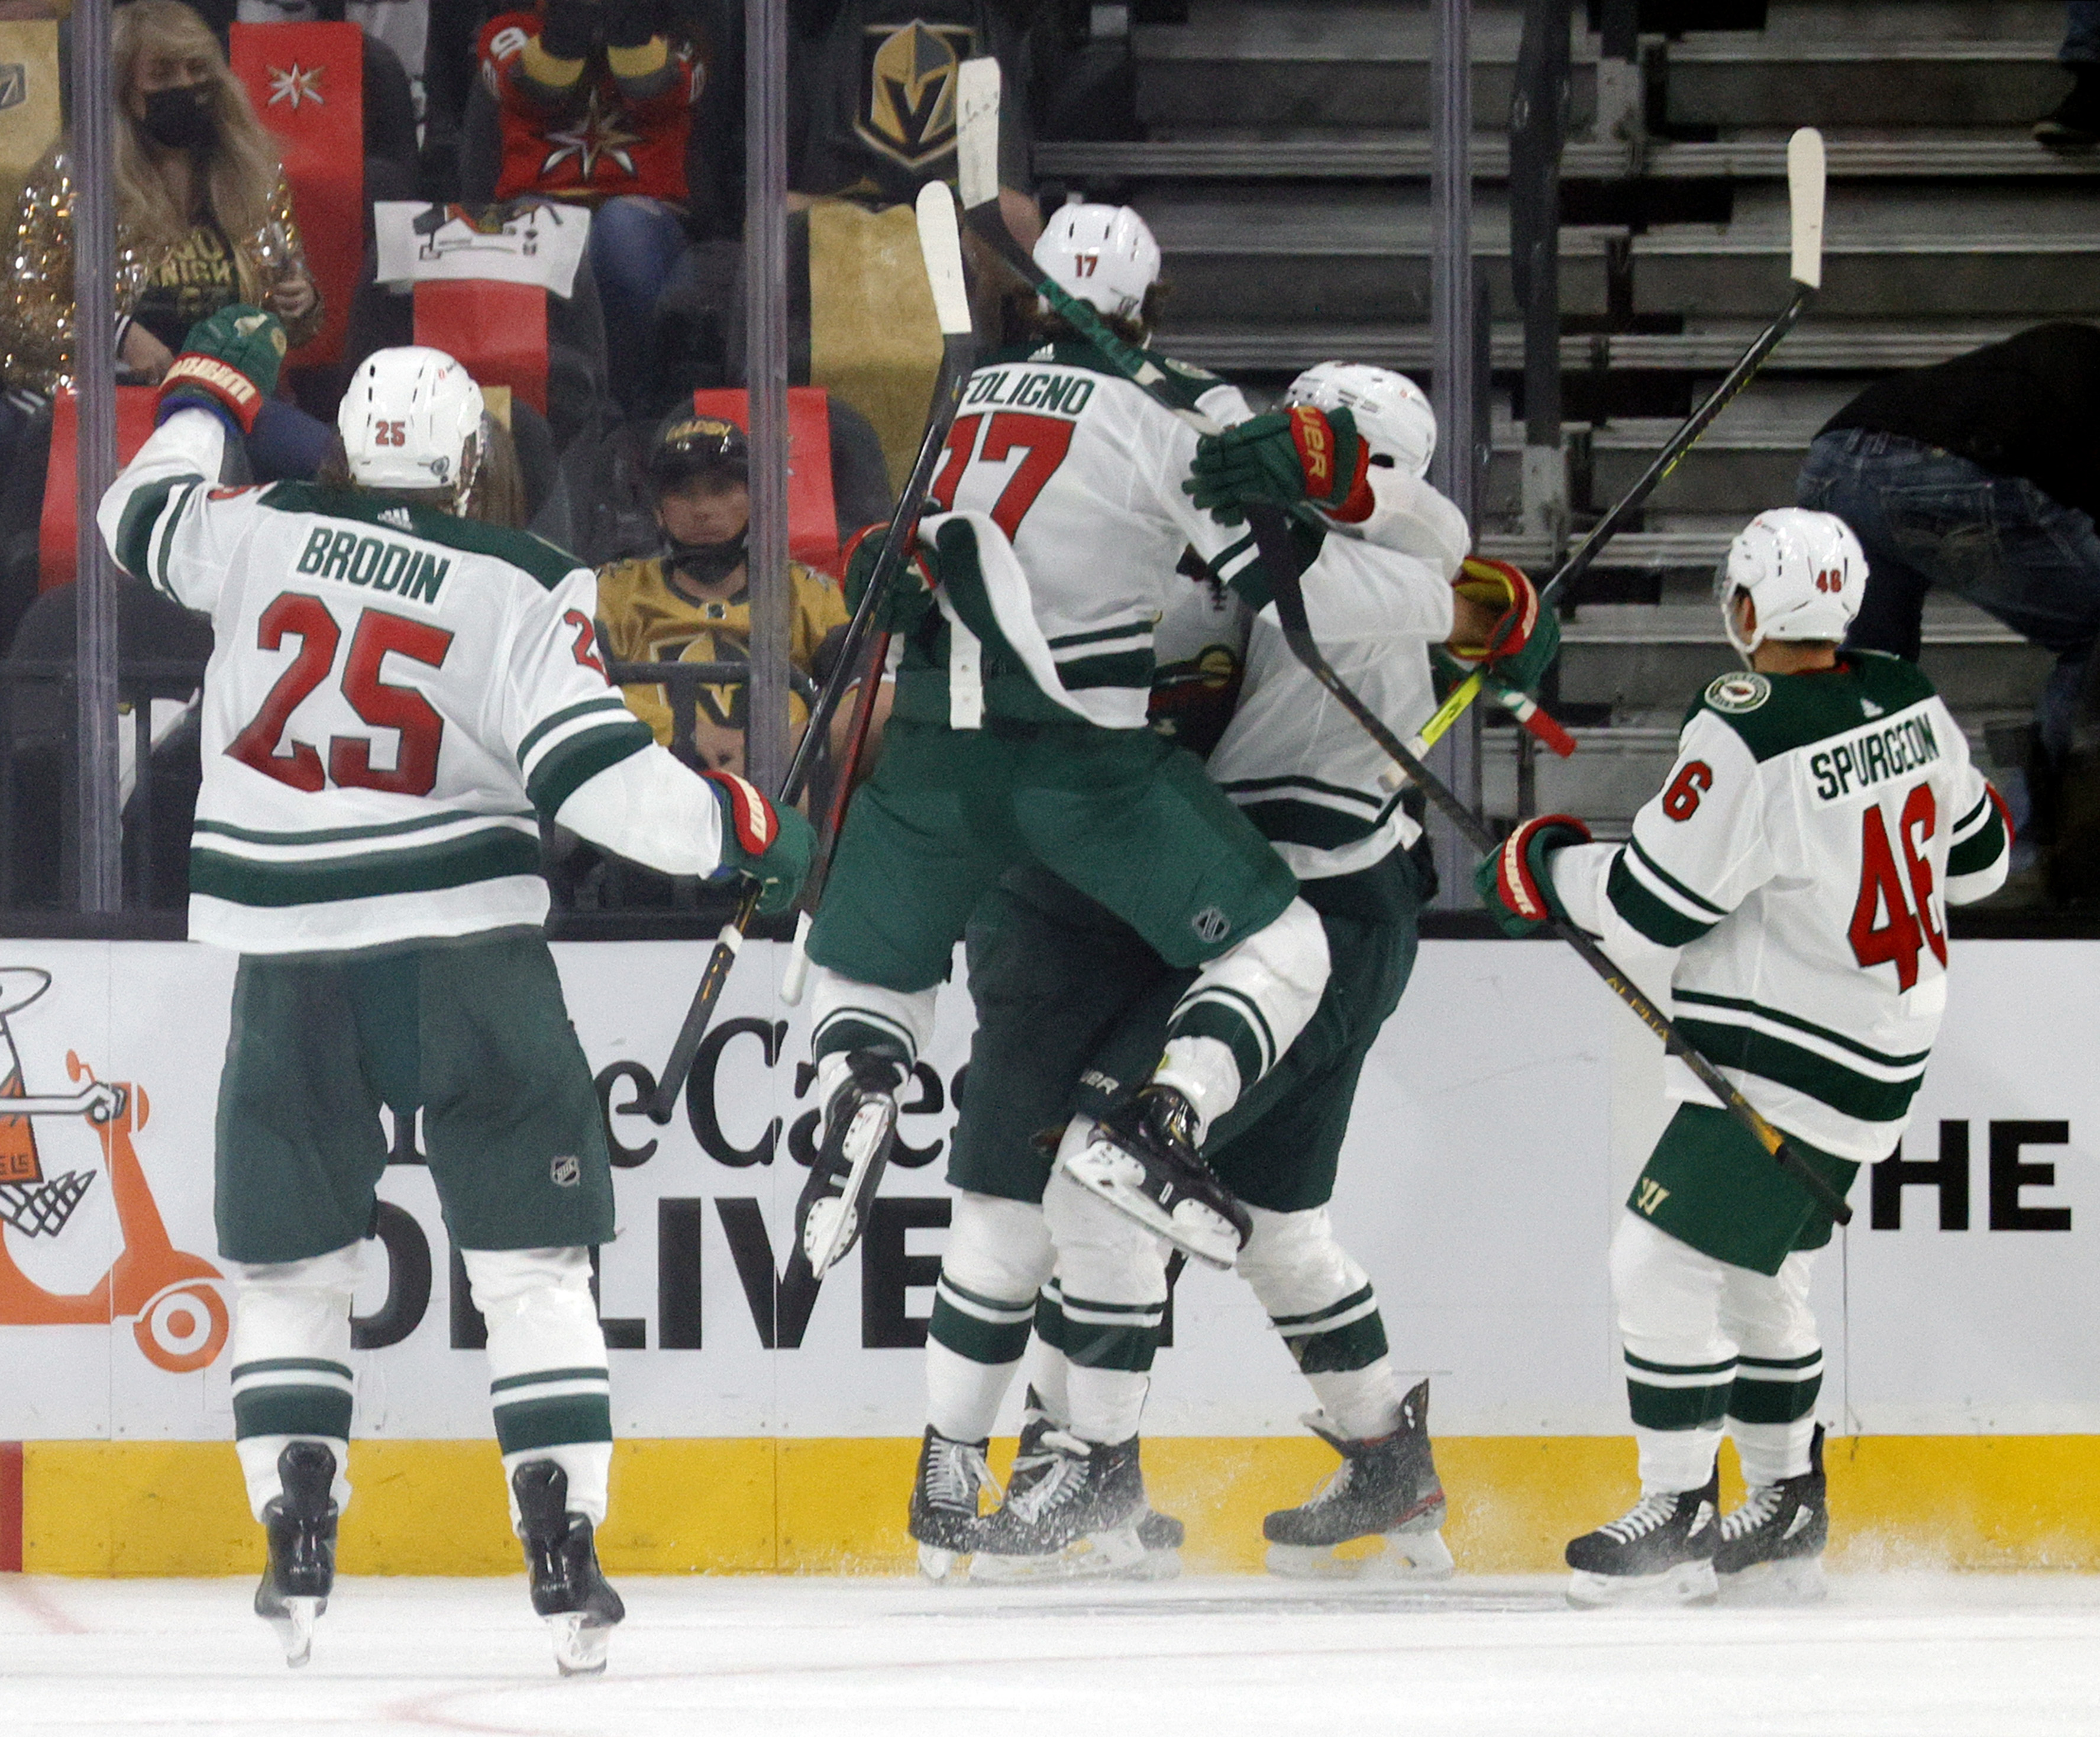 Jonas Brodin #25, Marcus Foligno #17, Joel Eriksson Ek #14, Jordan Greenway #18 and Jared Spurgeon #46 of the Minnesota Wild celebrate after Eriksson Ek scored an overtime goal against the Vegas Golden Knights to win Game One of the First Round of the 2021 Stanley Cup Playoffs 1-0 at T-Mobile Arena on May 16, 2021 in Las Vegas, Nevada.